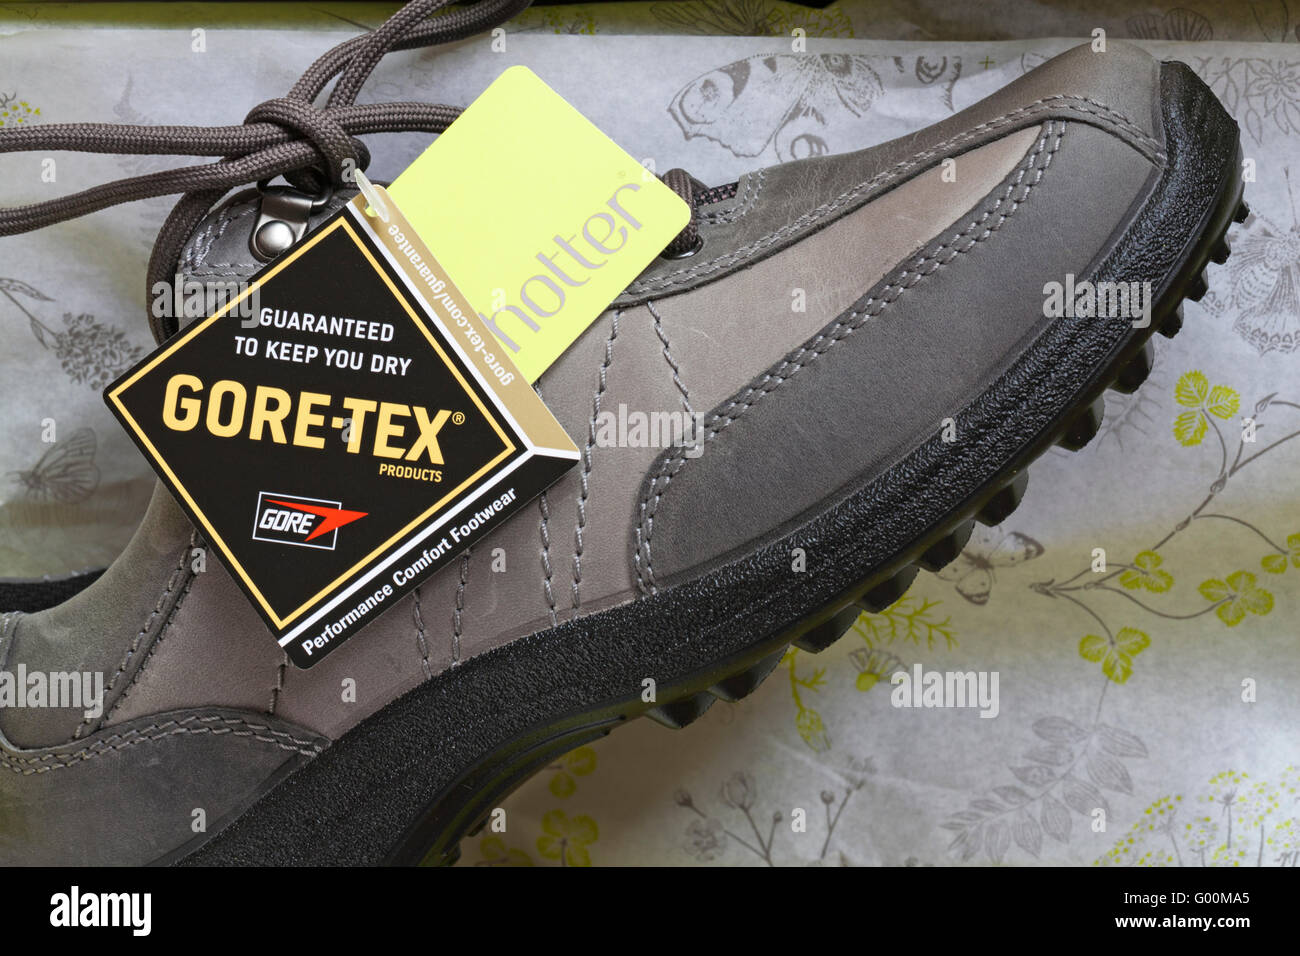 664bf72dd2b labels on Hotter Gore-tex shoes guaranteed to keep you dry Stock ...